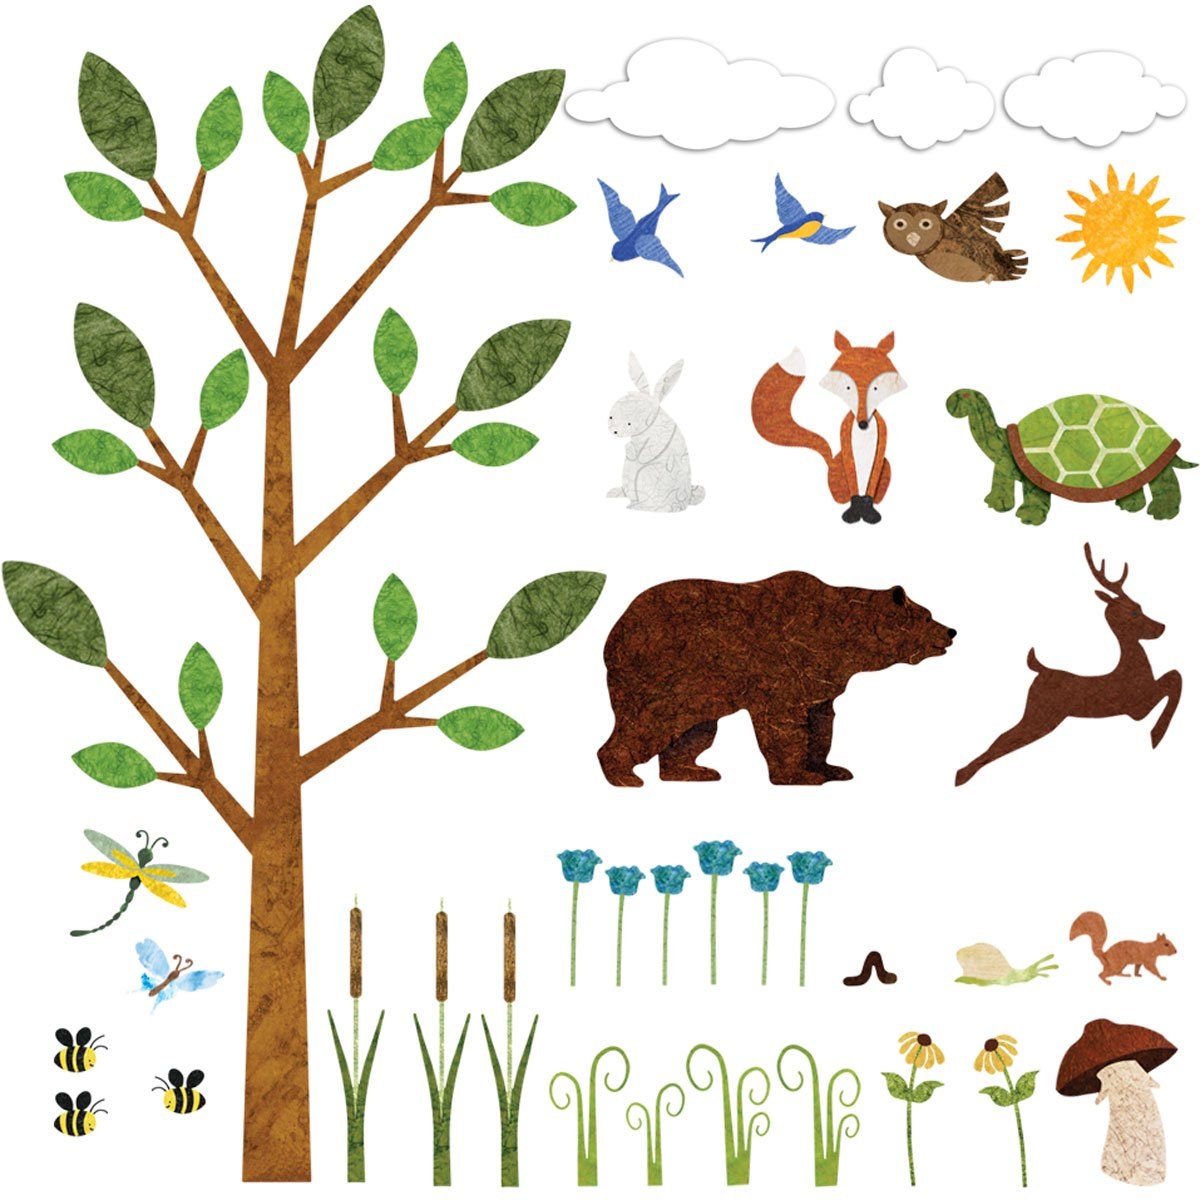 My Wonderful Walls Forest Wall Sticker Set - 37 Peel & Stick Woodland Decals for Nature Theme Baby Nursery and Kids Forest Room by My Wonderful Walls